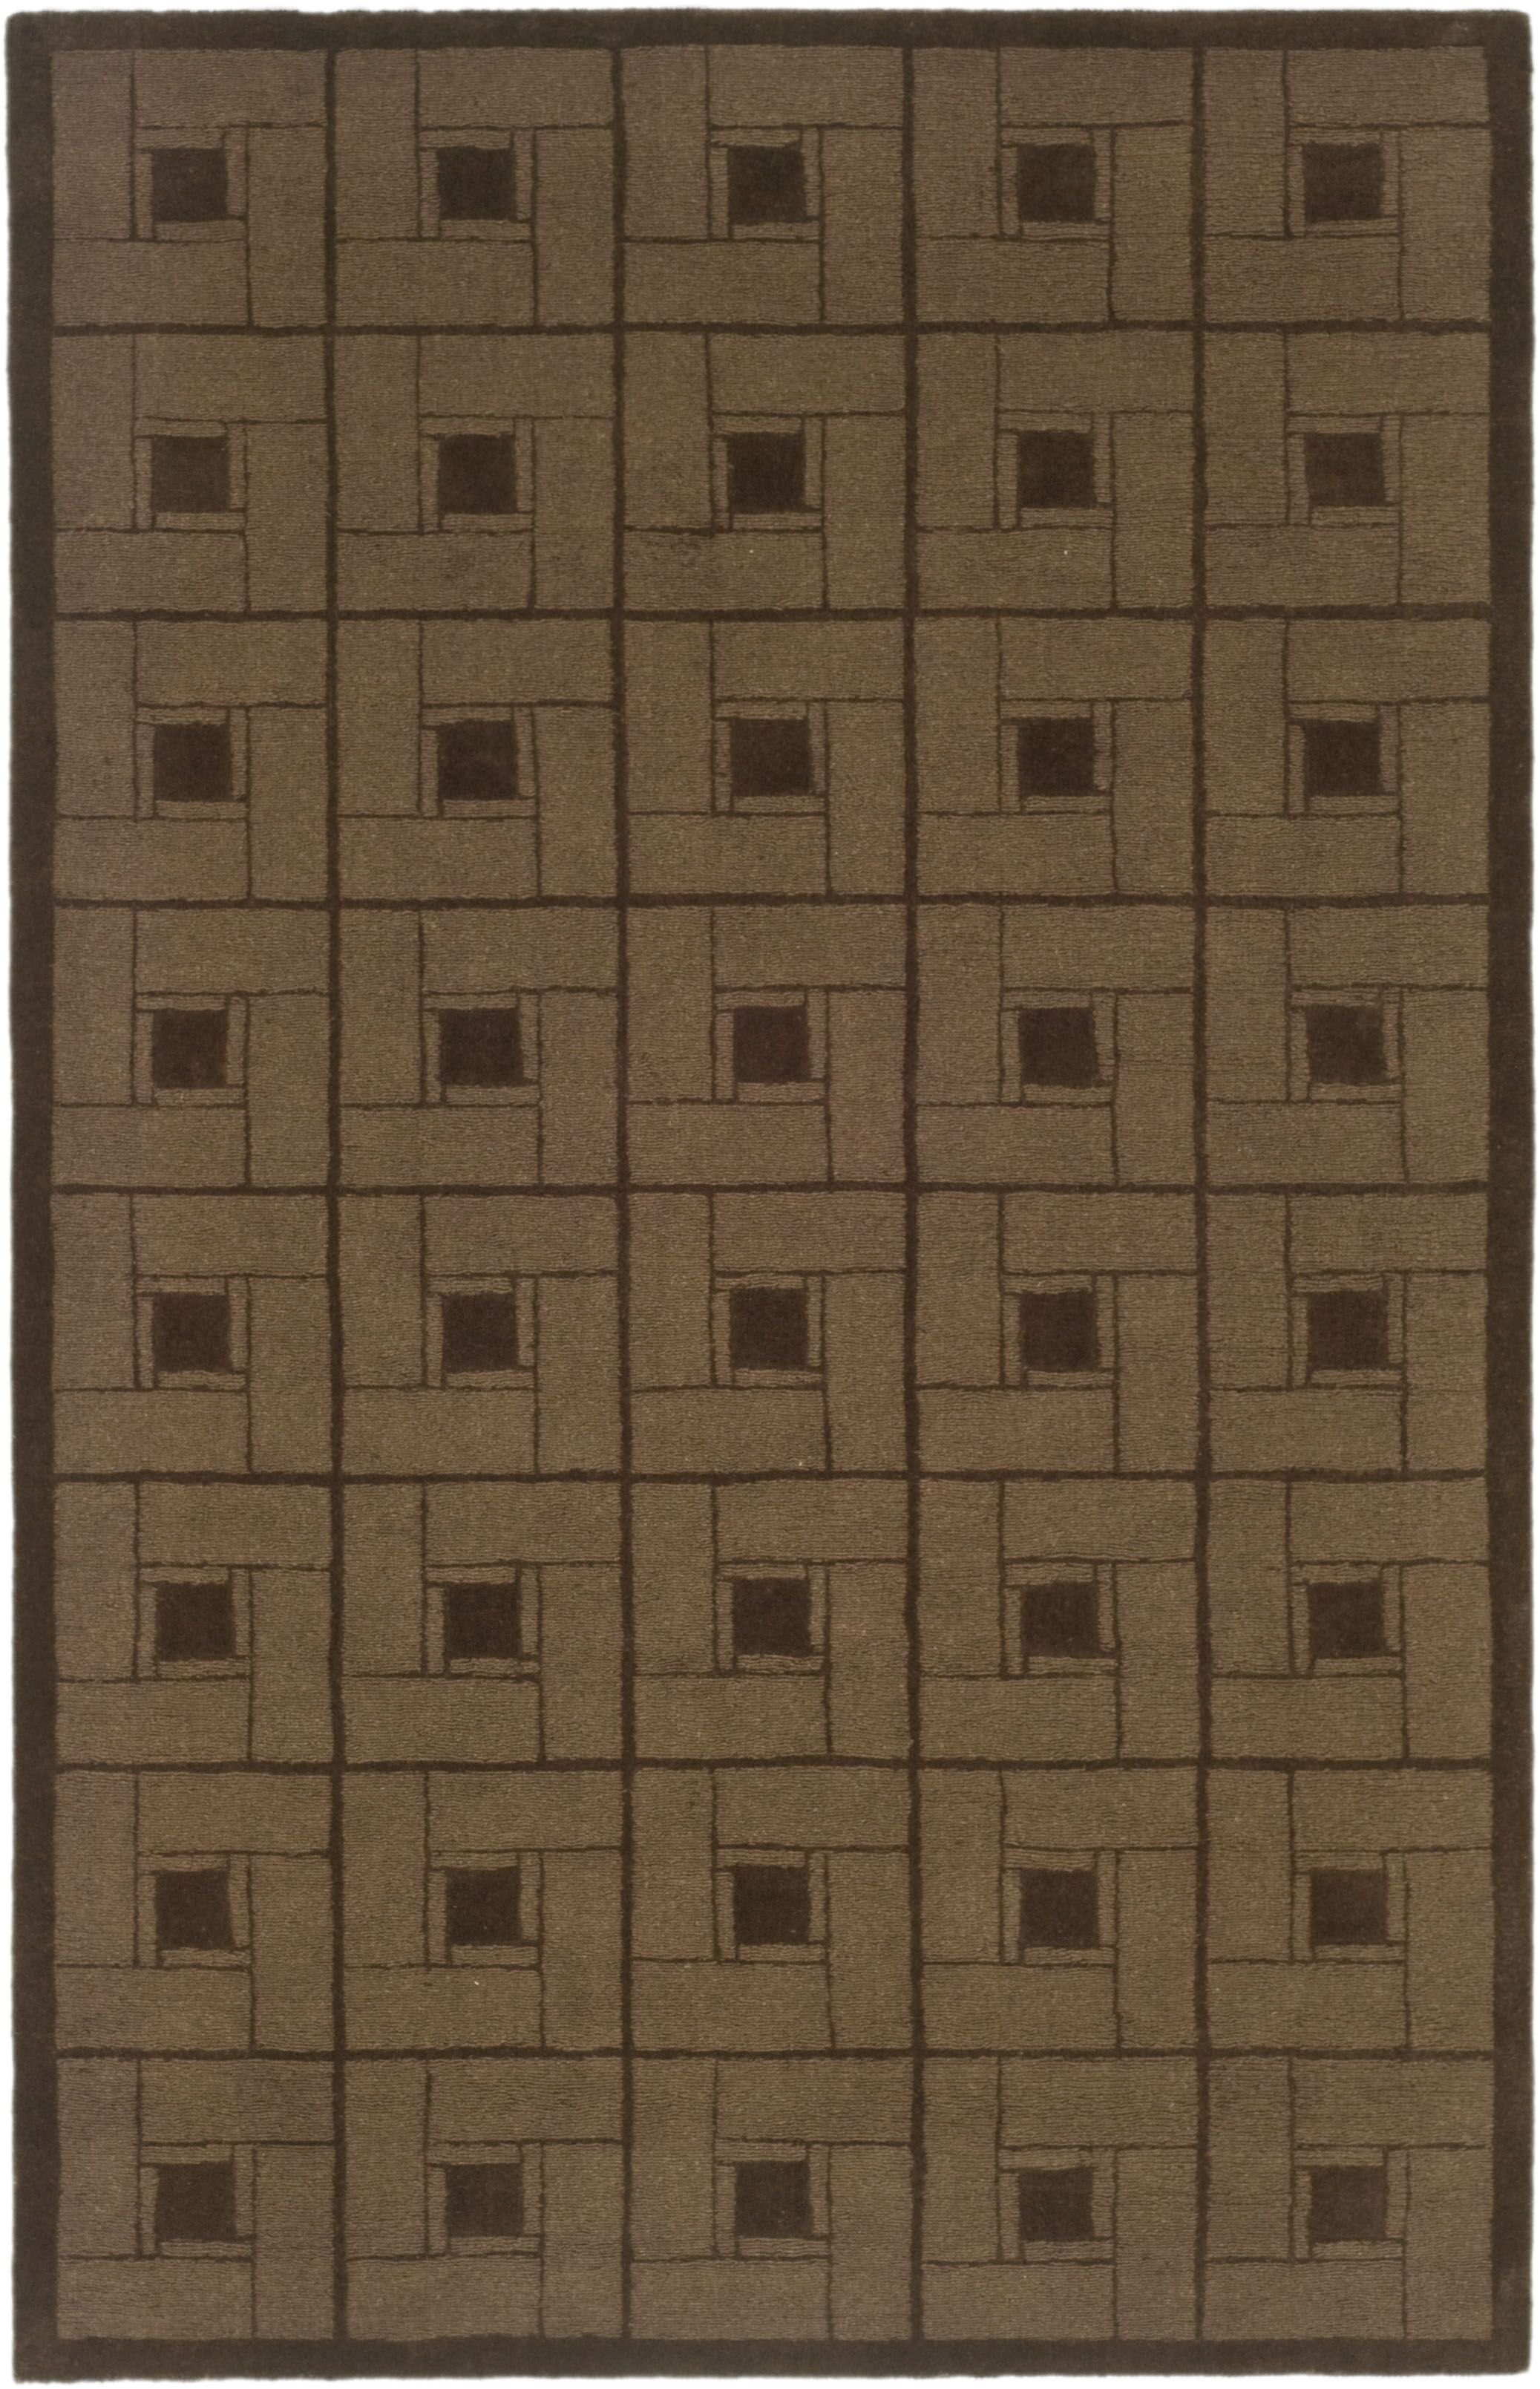 Martha Stewart Square Knot Bay Colt Area Rug Rug Size: Rectangle 4' x 6'